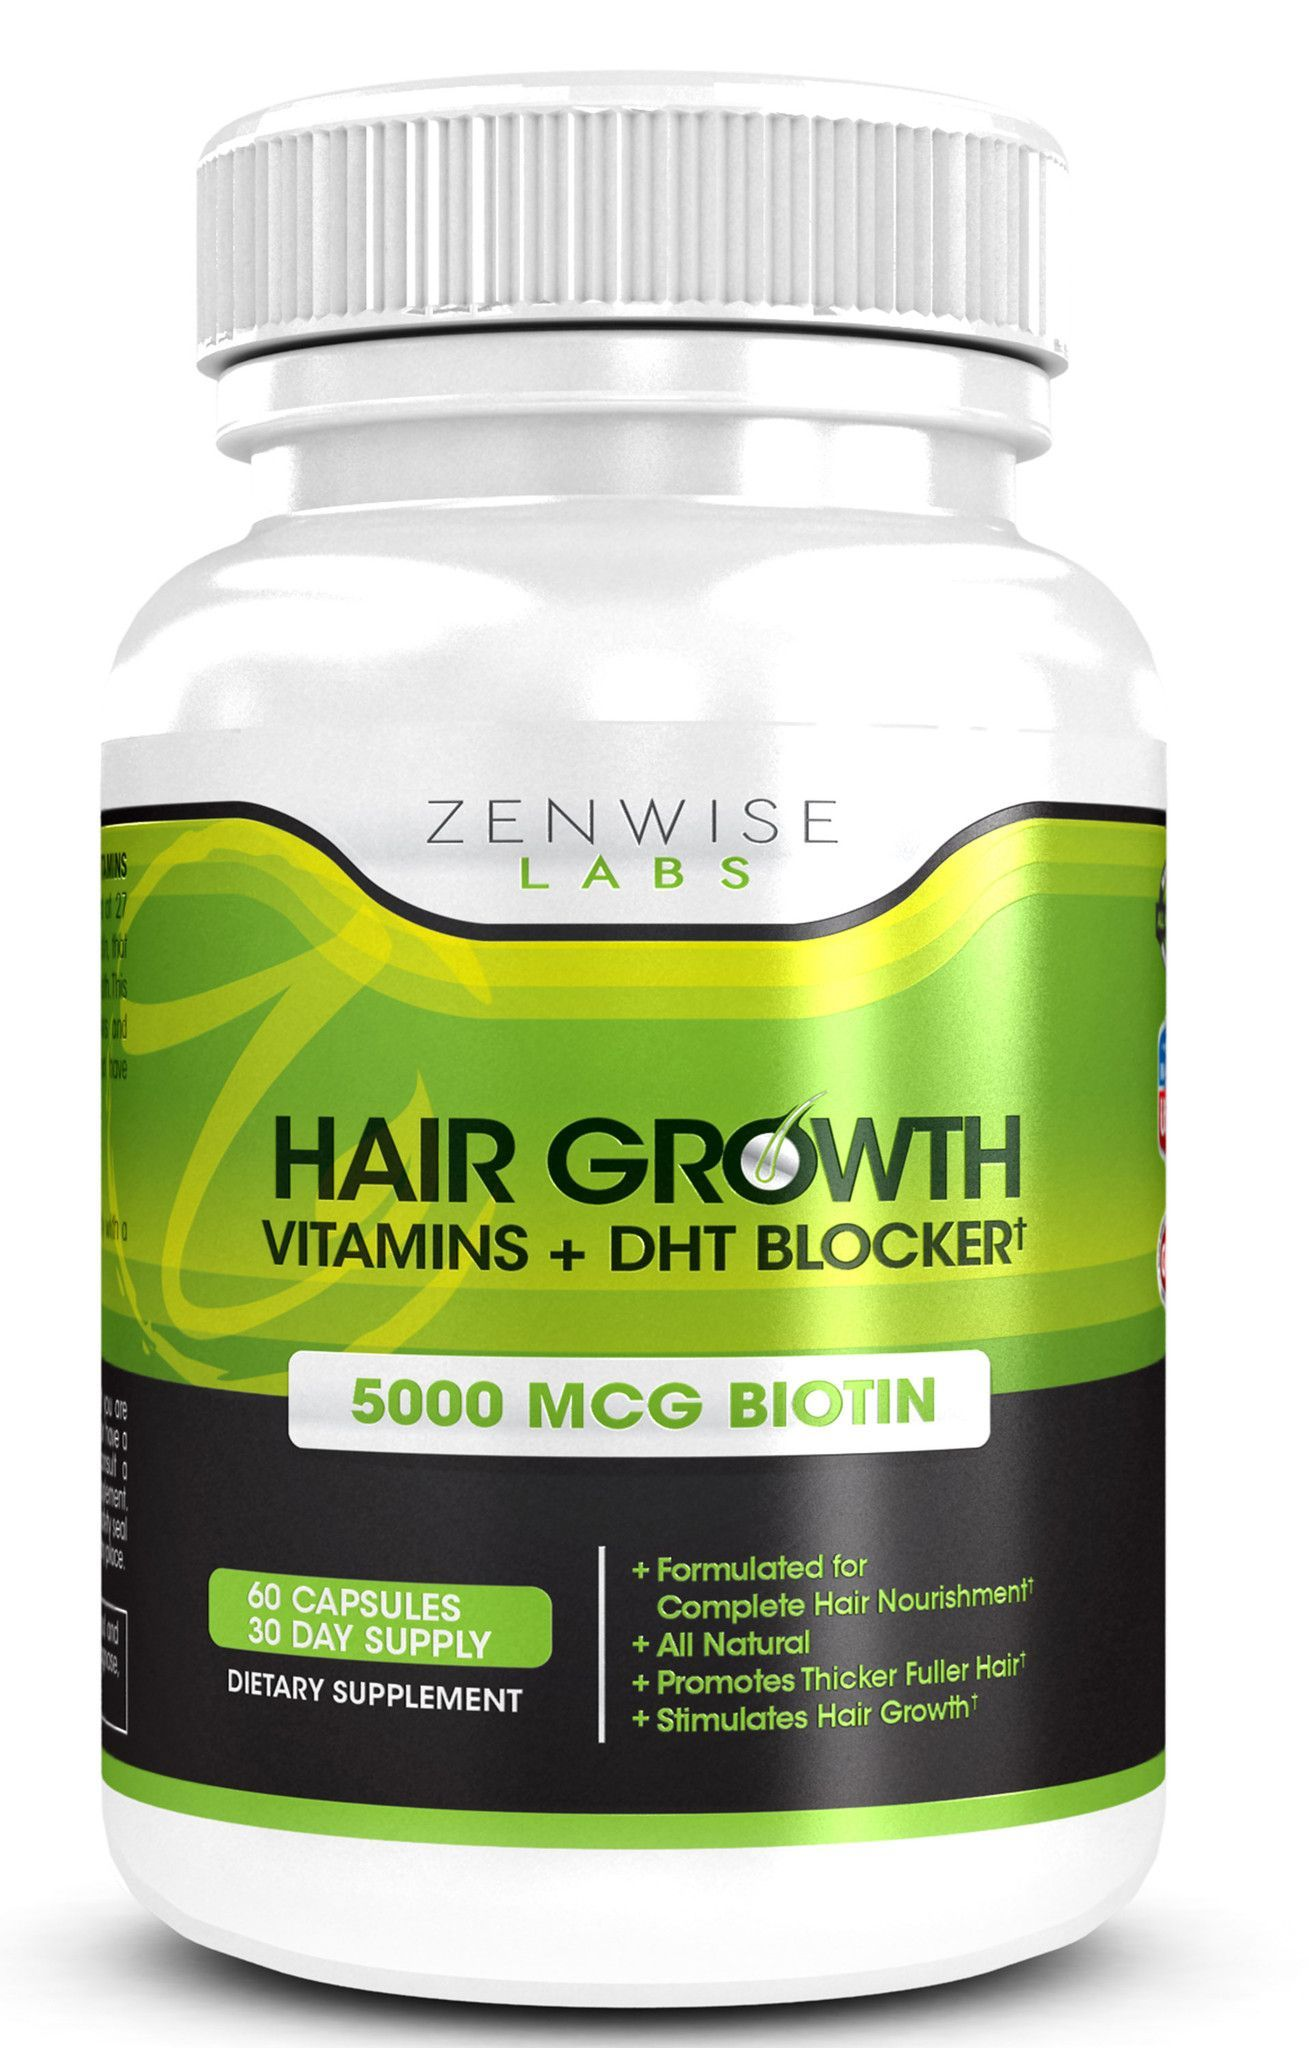 Daily Hair Growth Vitamins with DHT Blocker ct  Hair growth